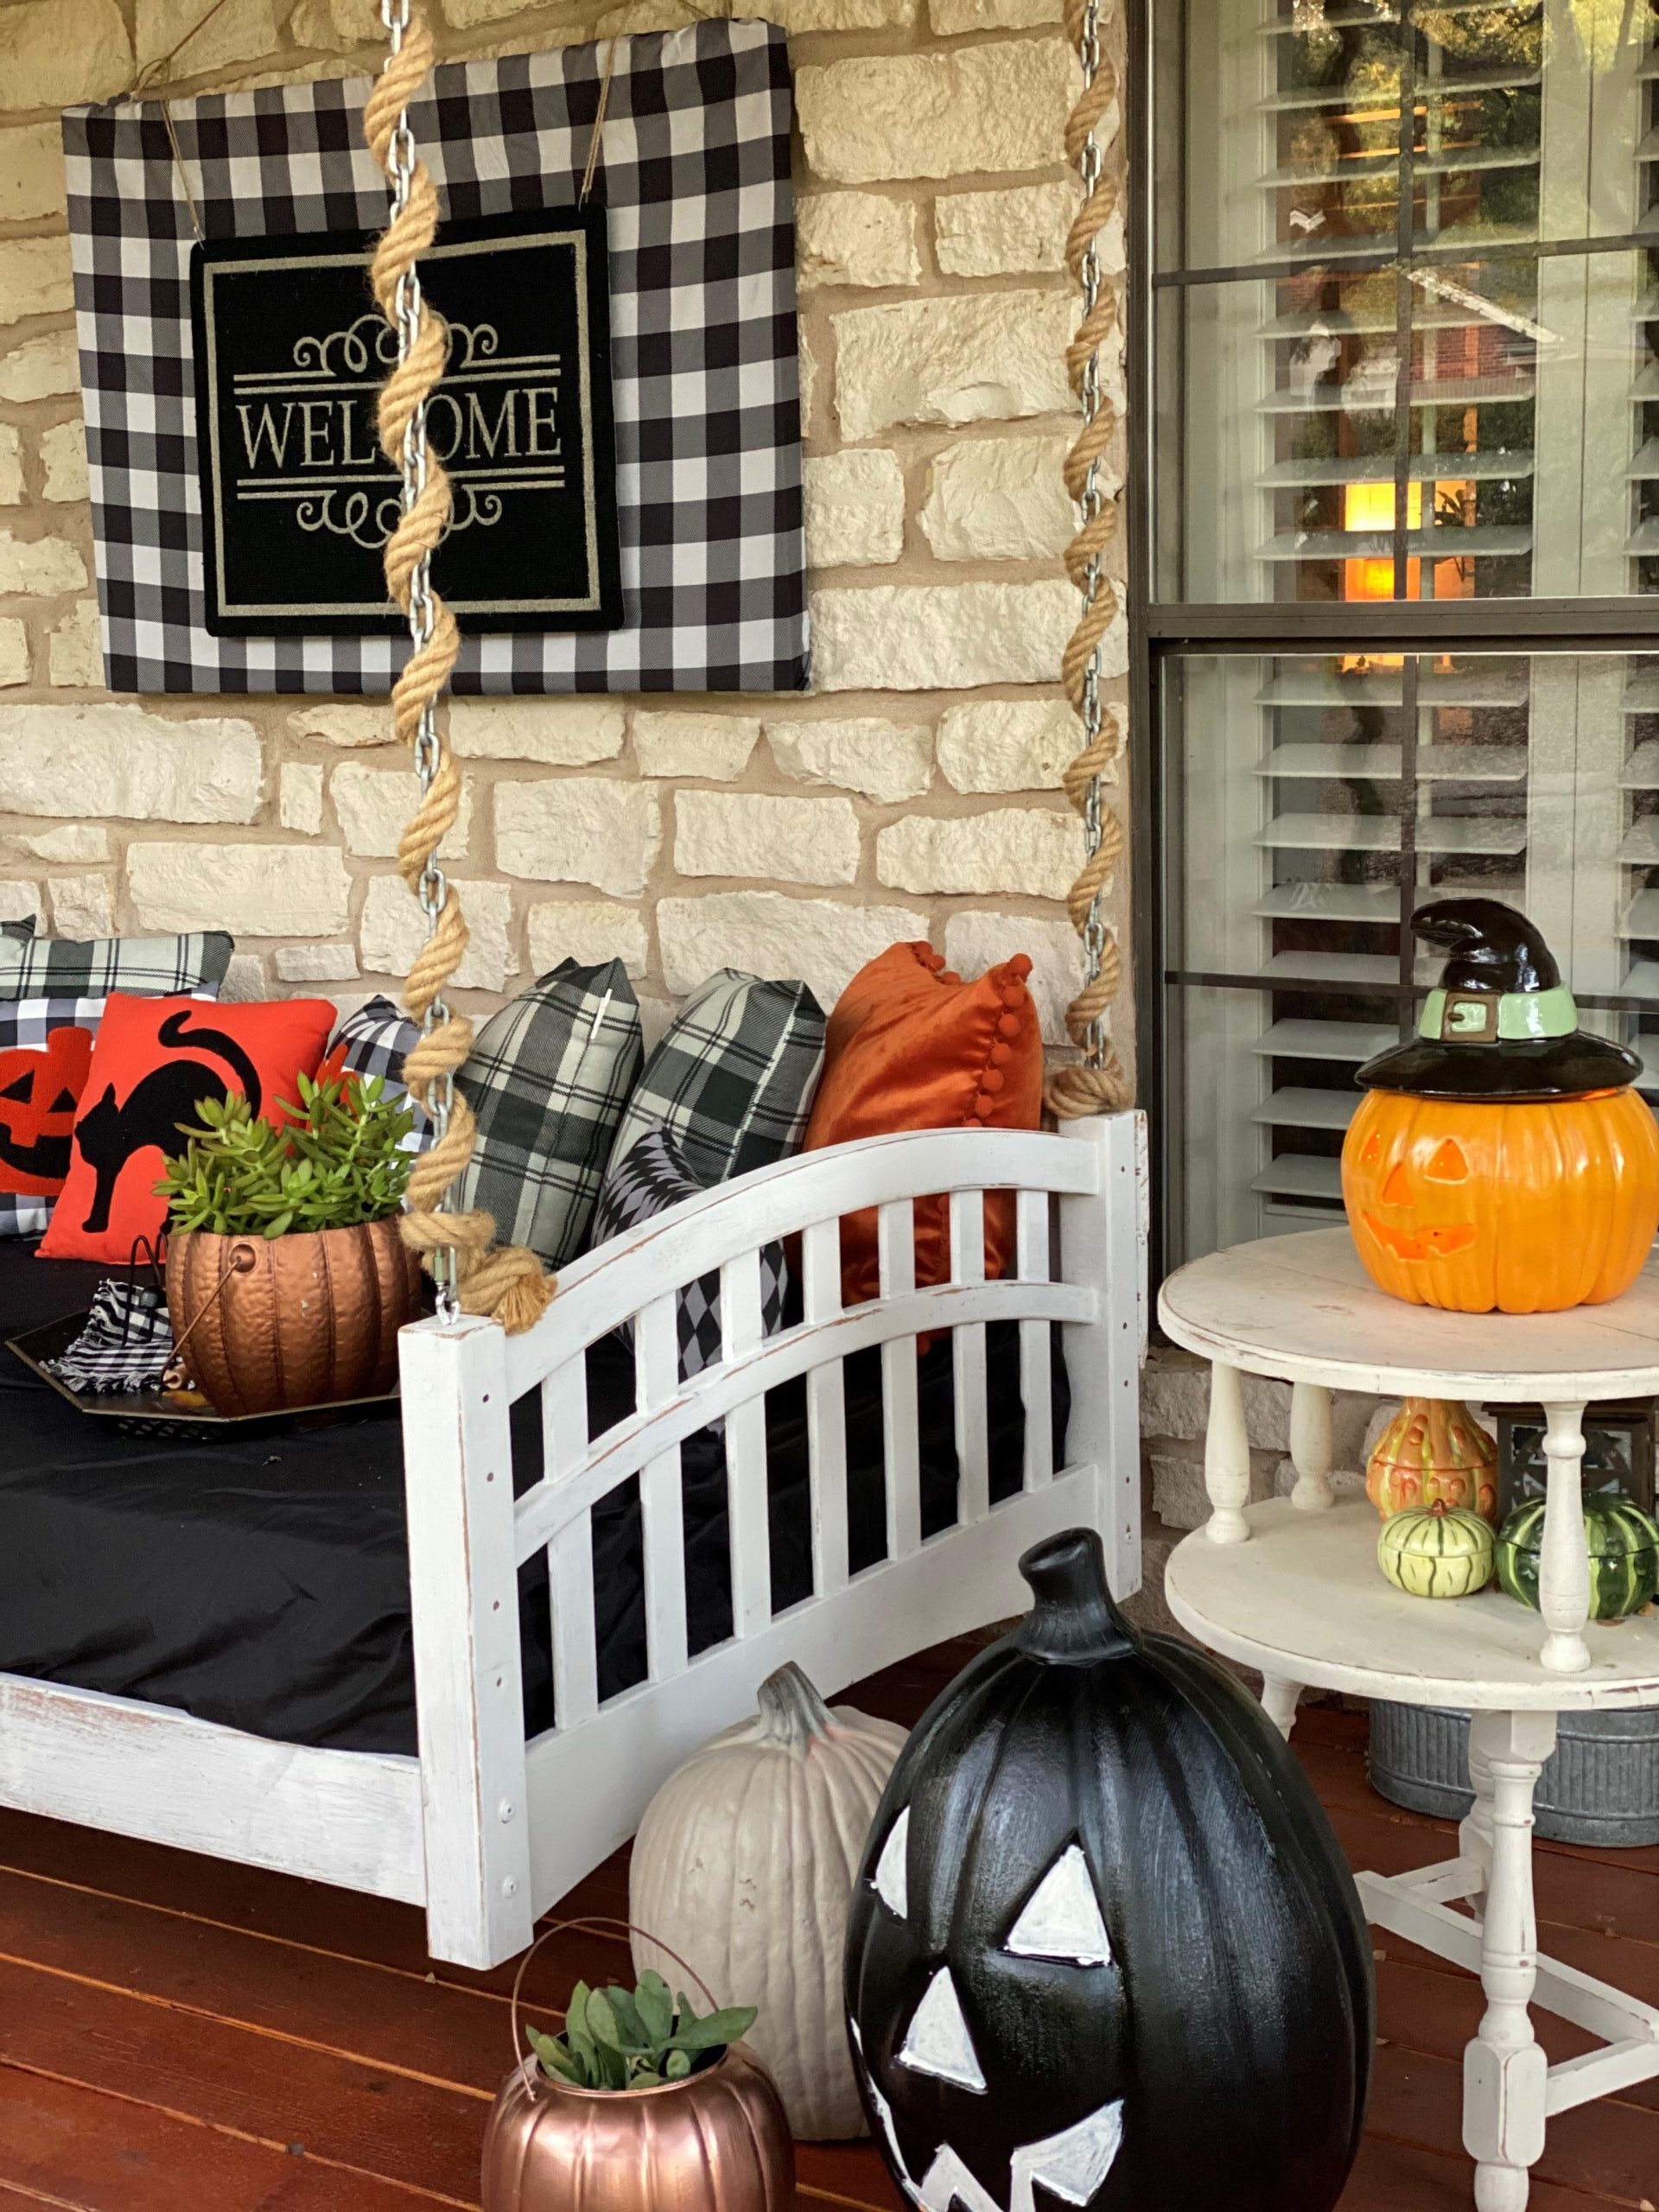 Halloween Front Porch Decorations, Vintage Rustic Front Porch, Black and White Decorations, Black and White Buffalo Check, Welcome Sign